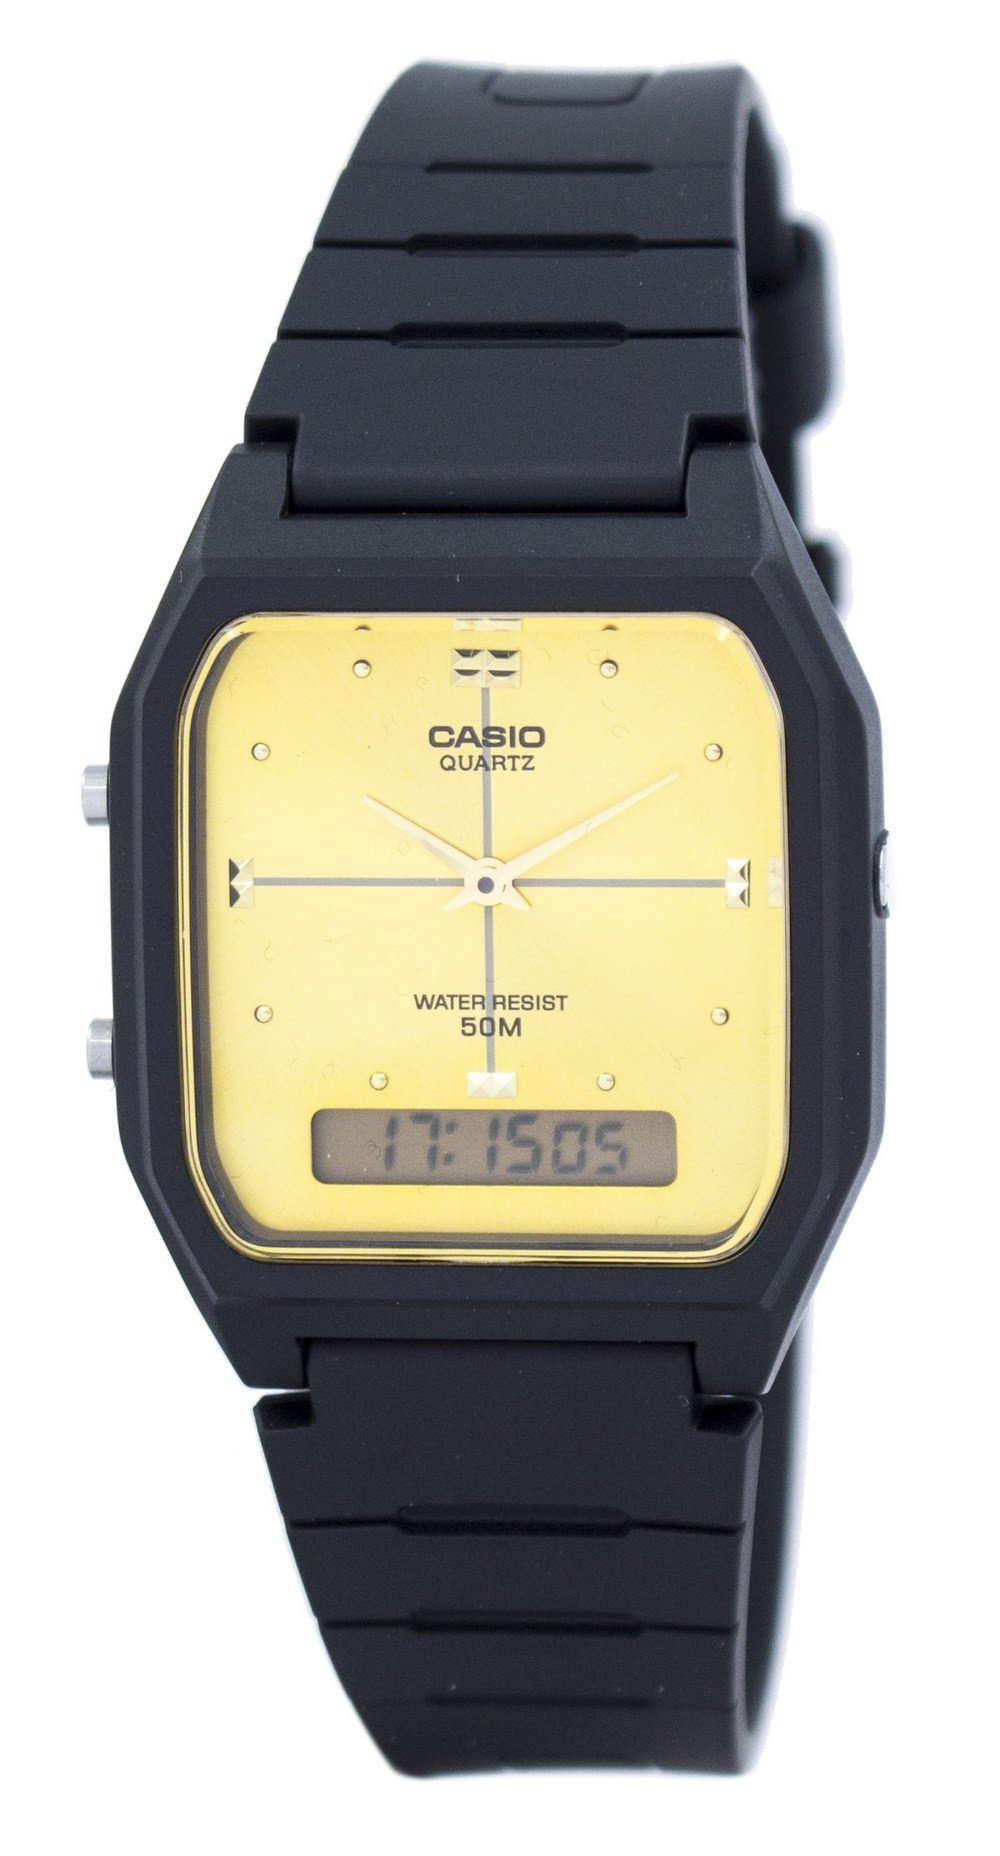 Casio Analog Digital Quartz Dual Time AW-48HE-9AVDF AW48HE-9AVDF Men's Watch